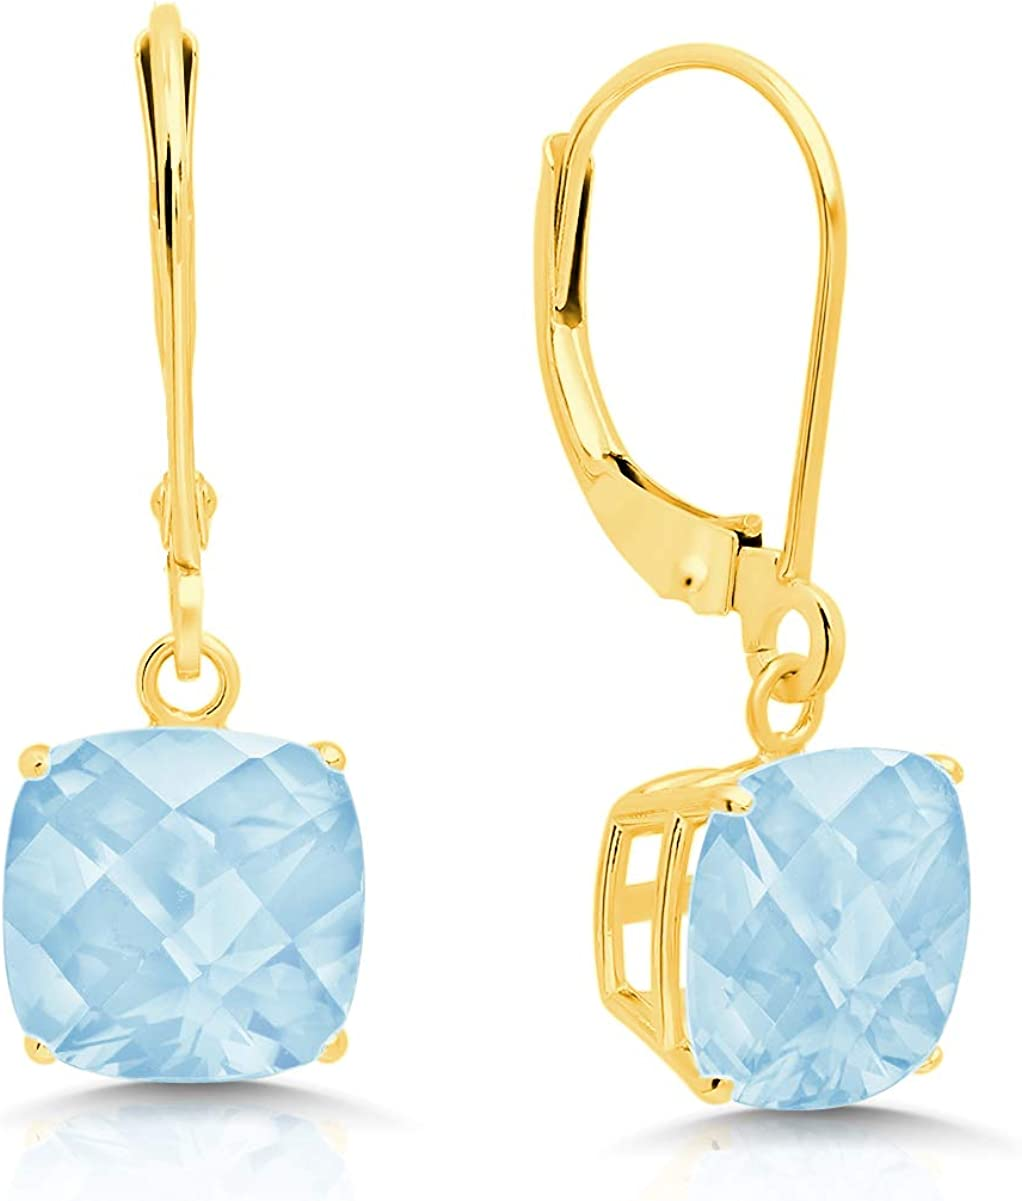 Certified 14k Yellow Gold Aquamarine Leverback Earrings Directly managed Low price store Dangle